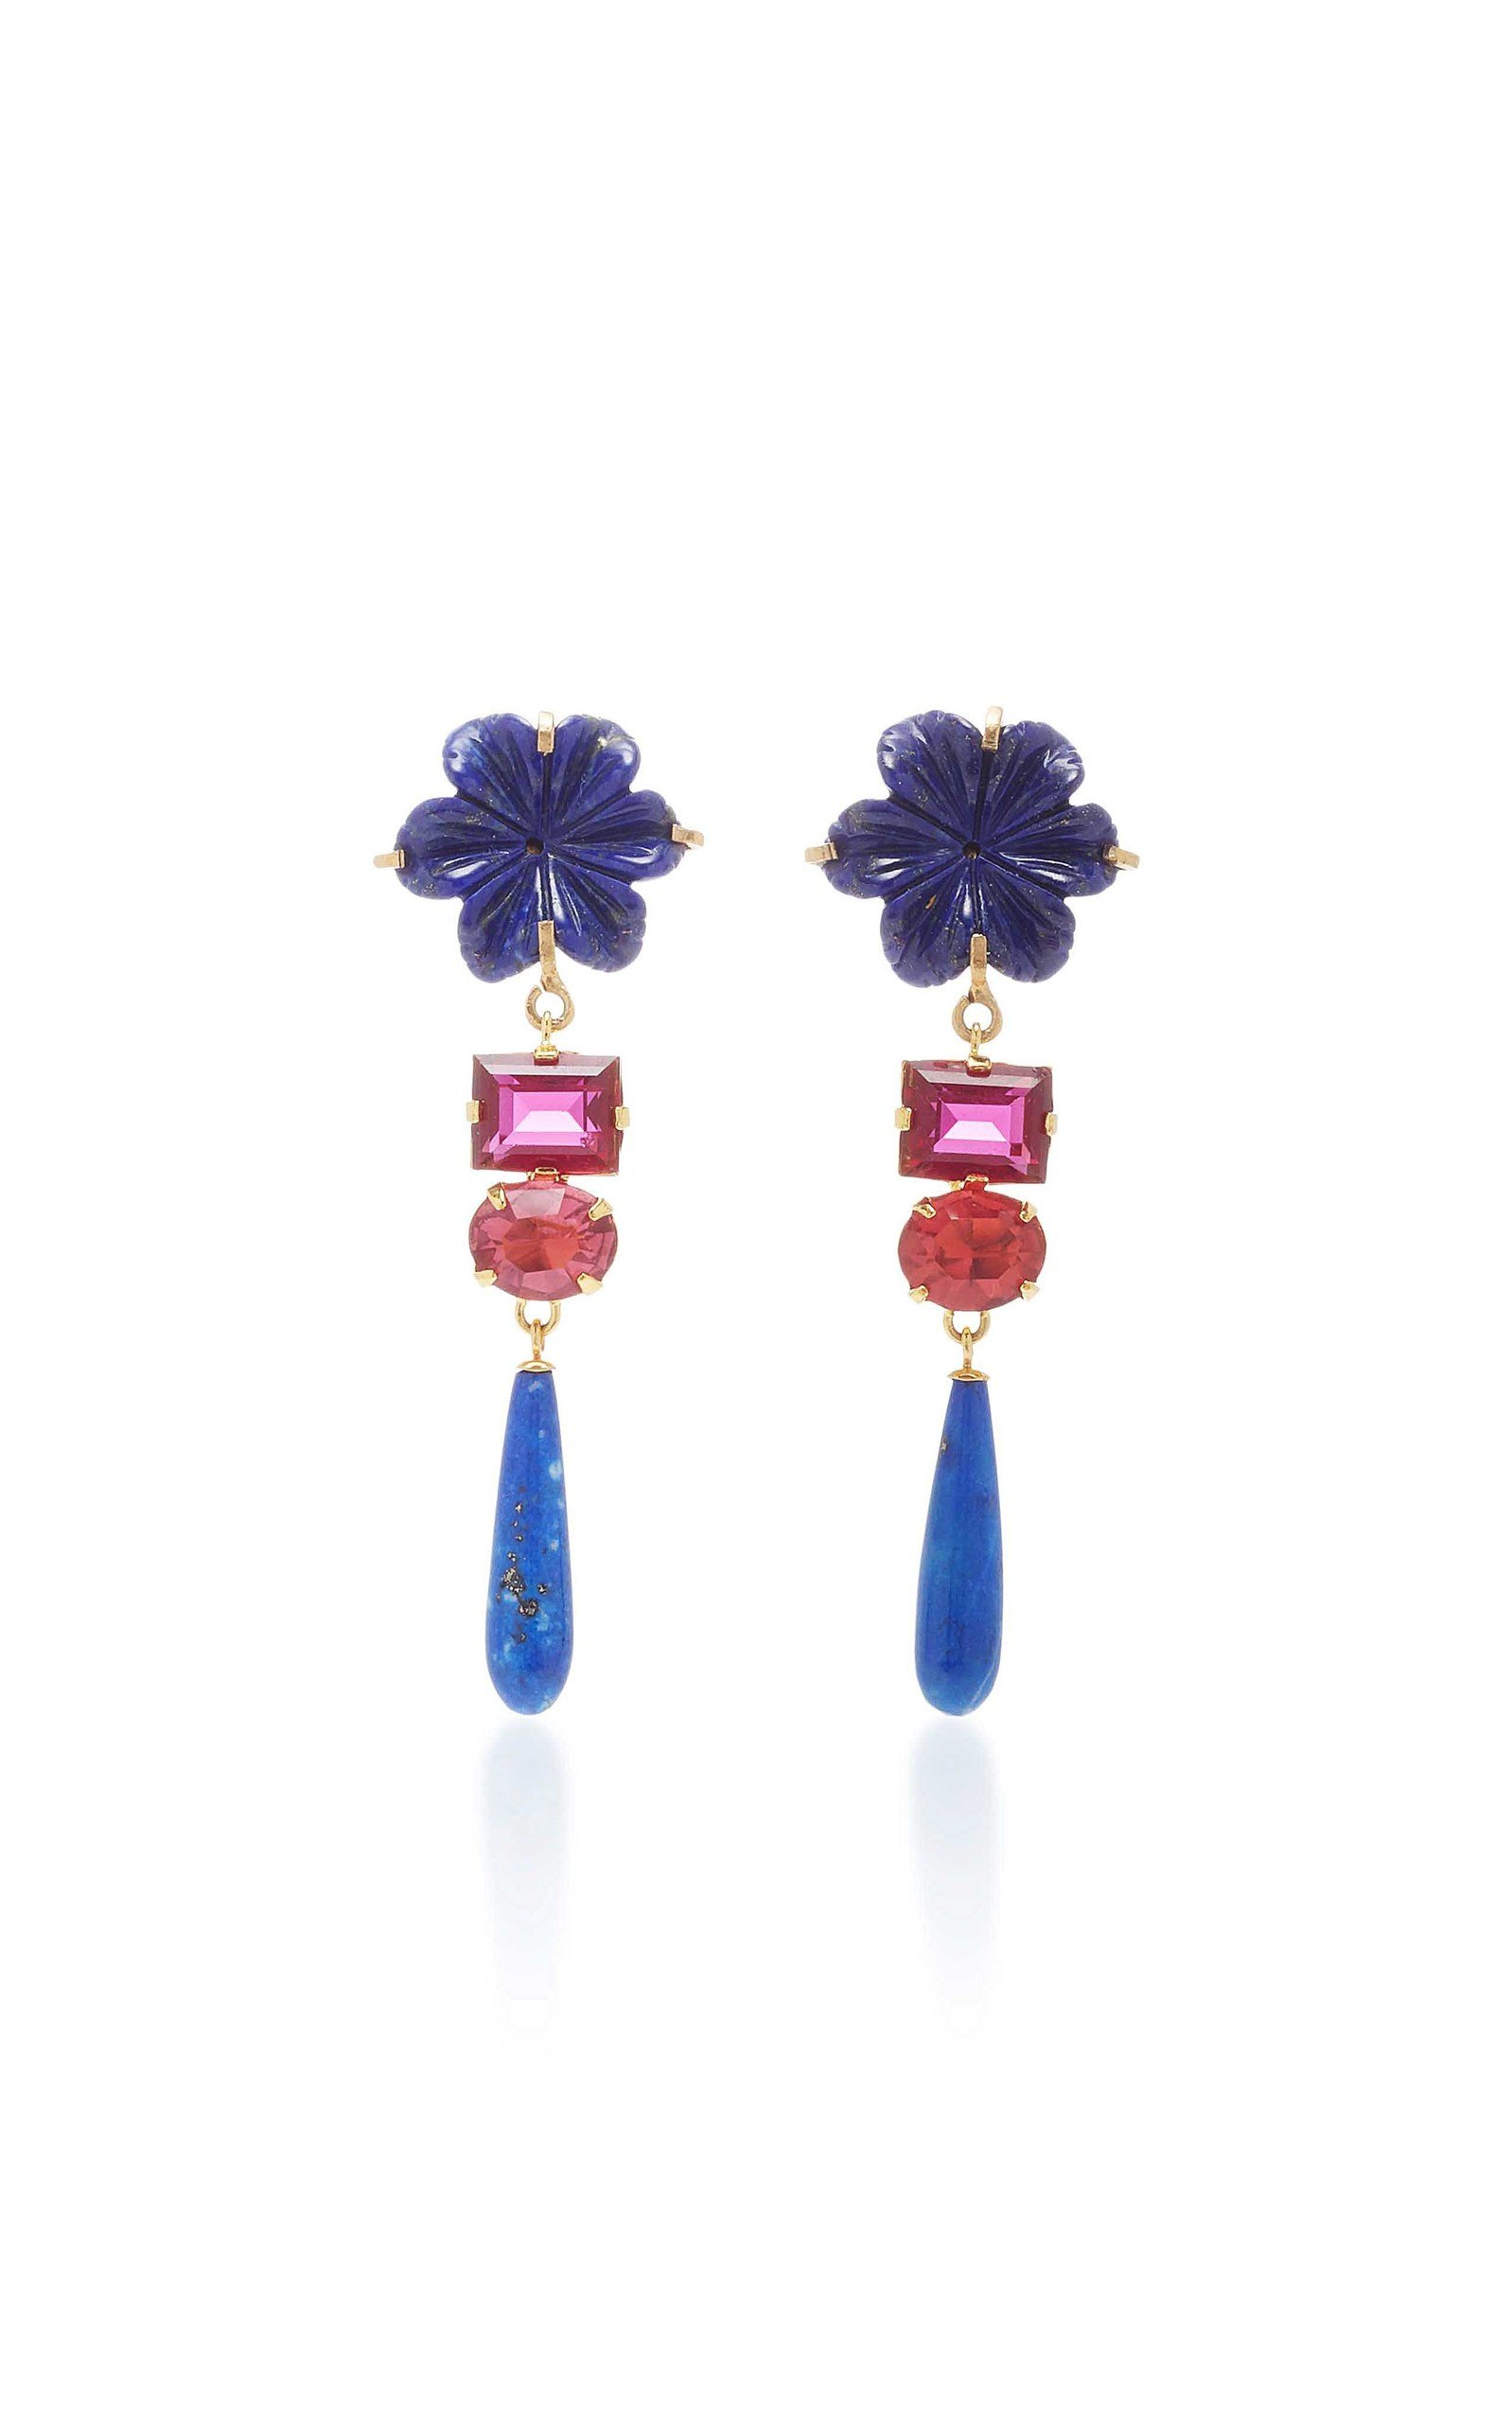 BAROQUE FLOWER EARRINGS